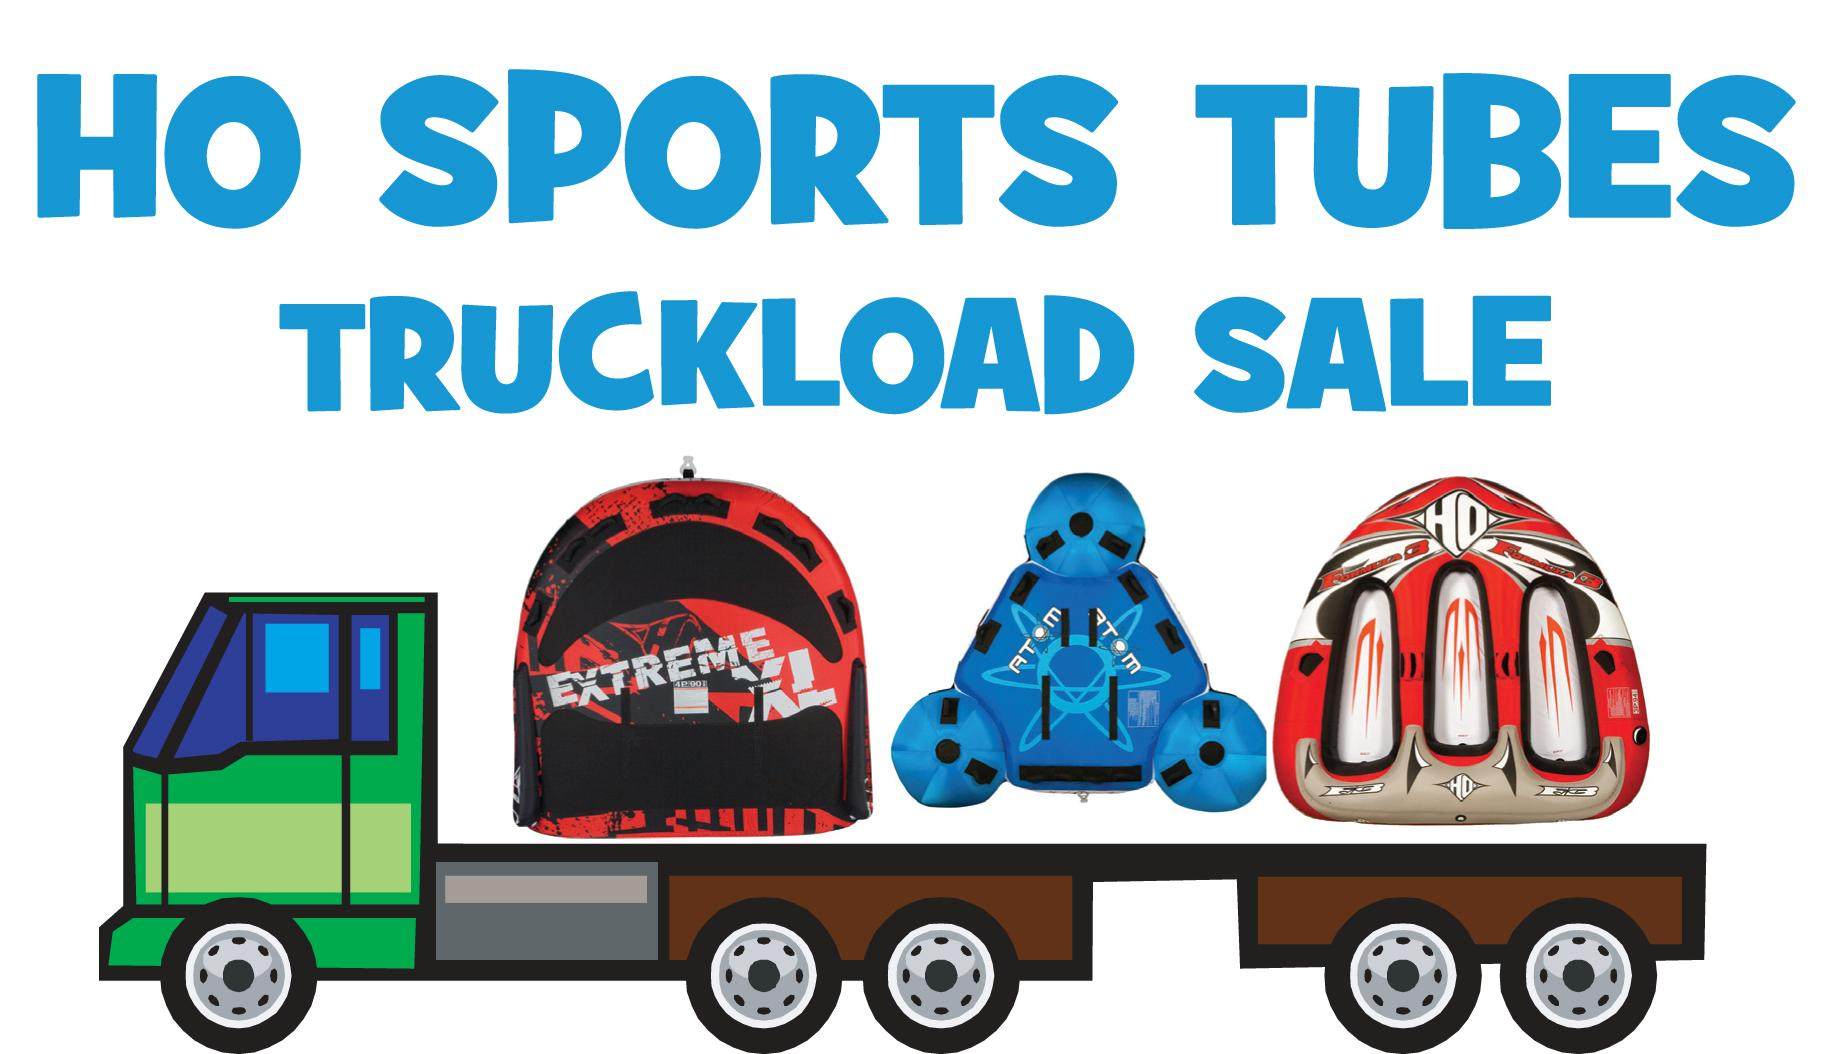 HO Sports Tube Truckload Sale